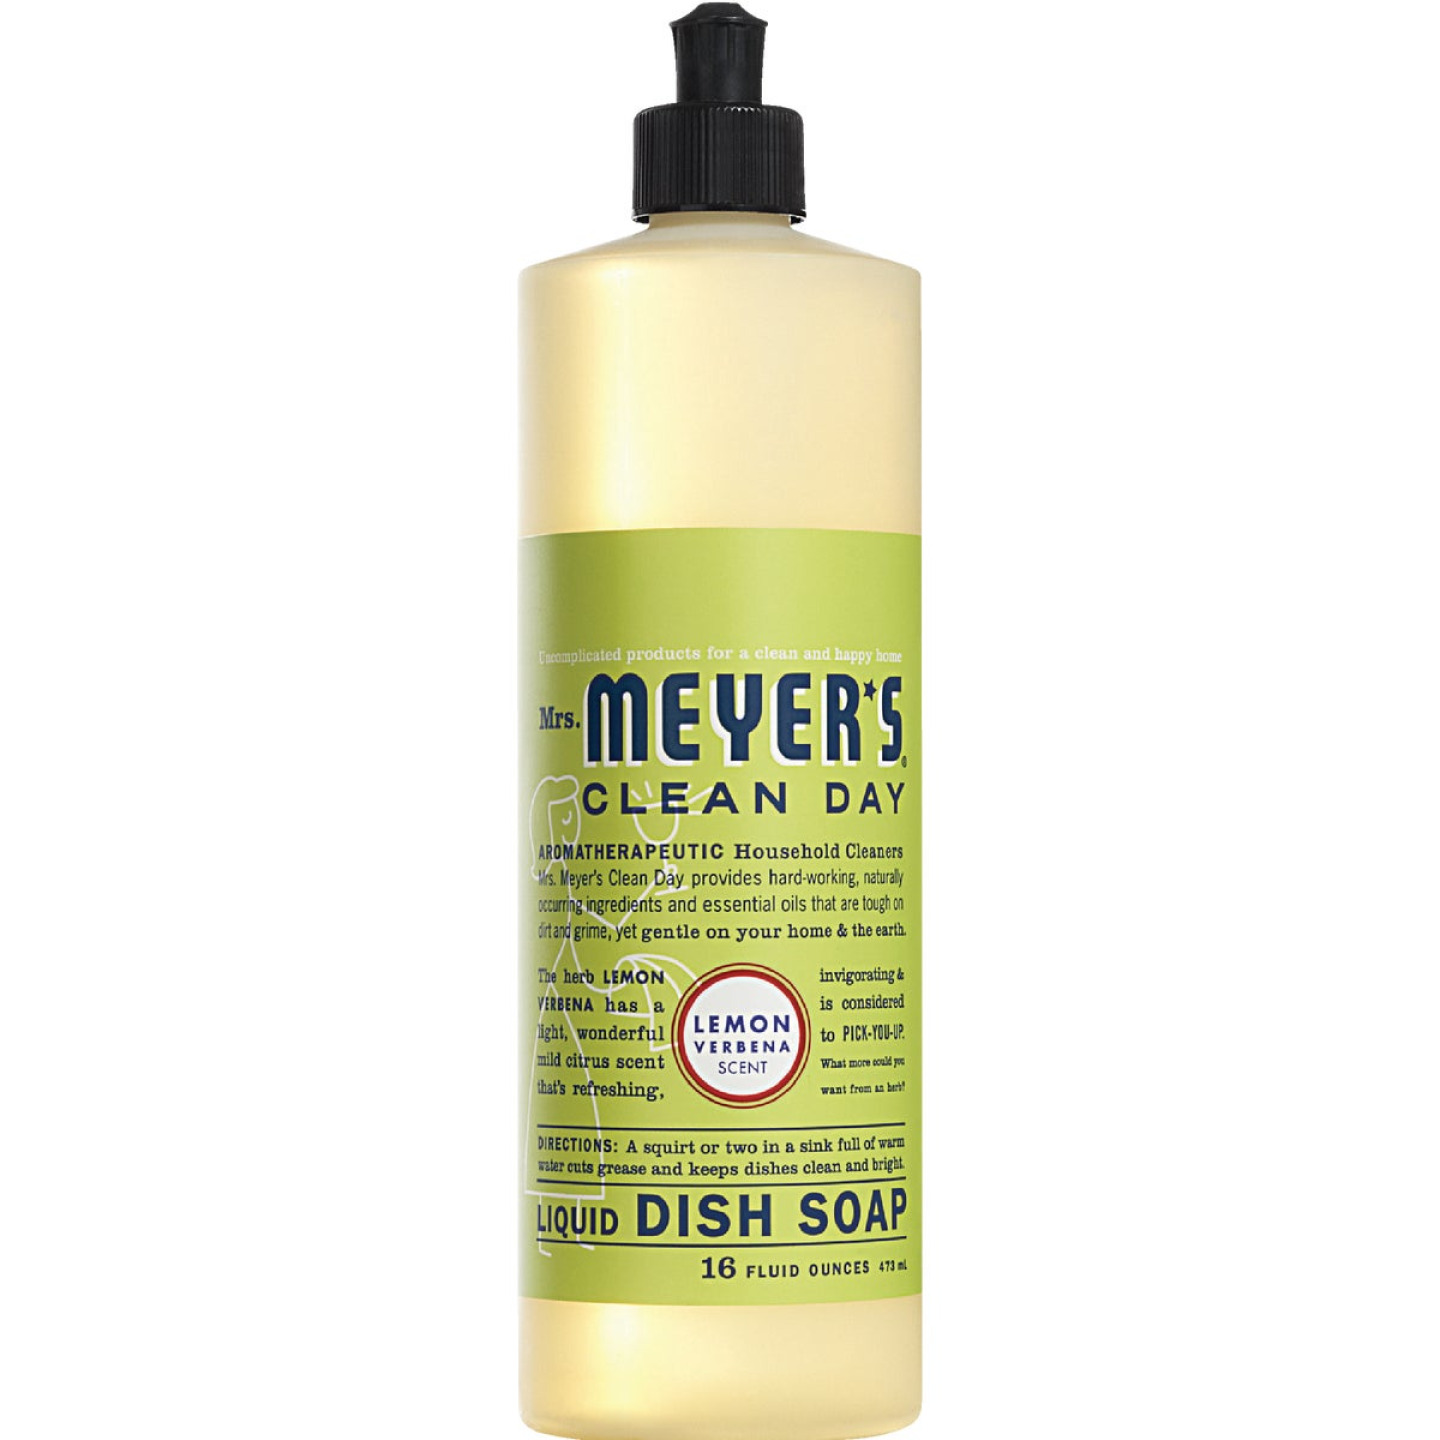 Mrs. Meyer's Clean Day 16 Oz. Lemon Verbena Scent Liquid Dish Soap Image 1